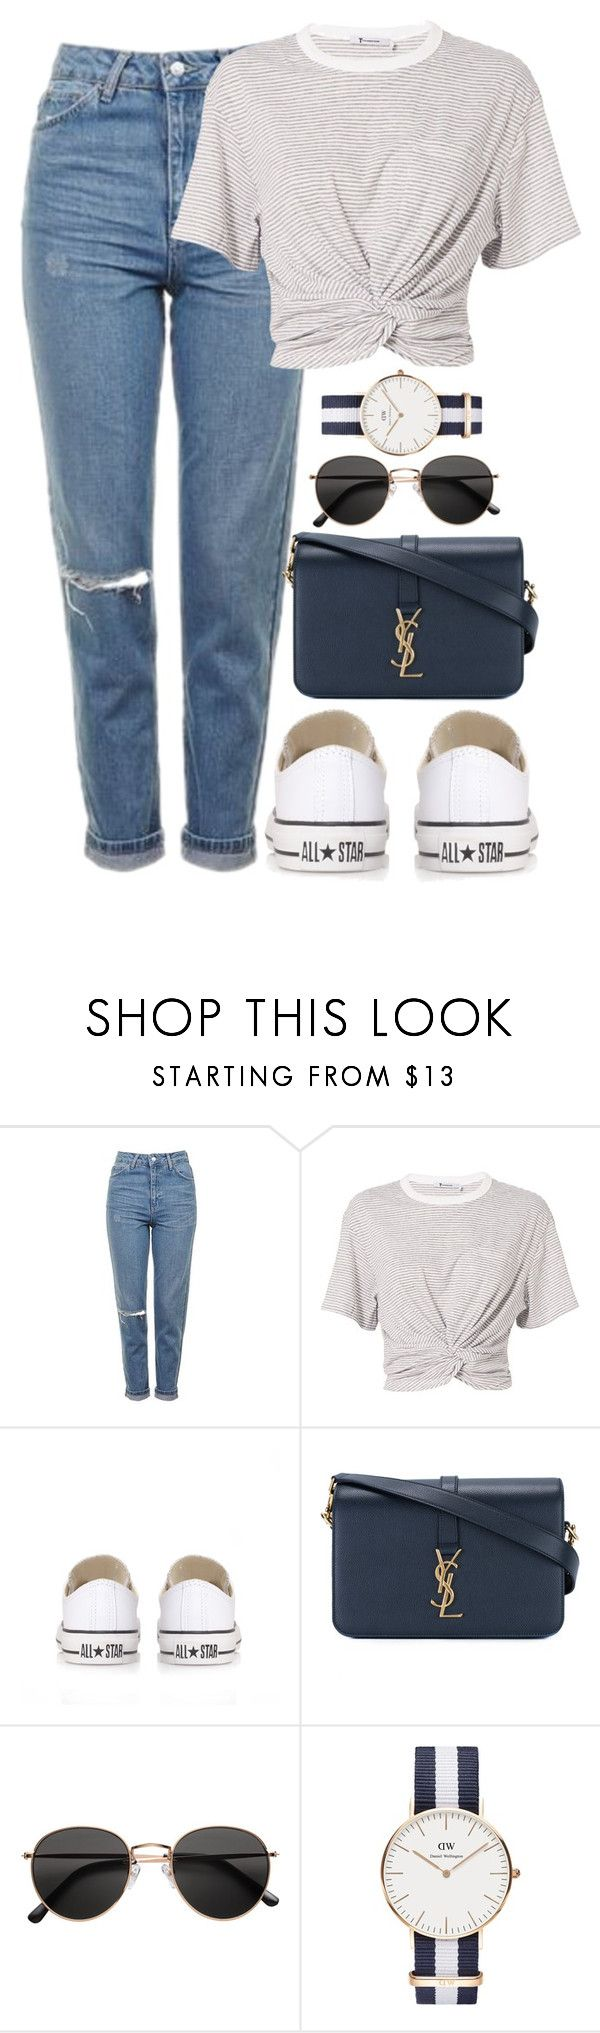 """""""☄️"""" by megsidc ❤ liked on Polyvore featuring Topshop, T By Alexander Wang, Converse, Yves Saint Laurent, H&M and Daniel Wellington"""